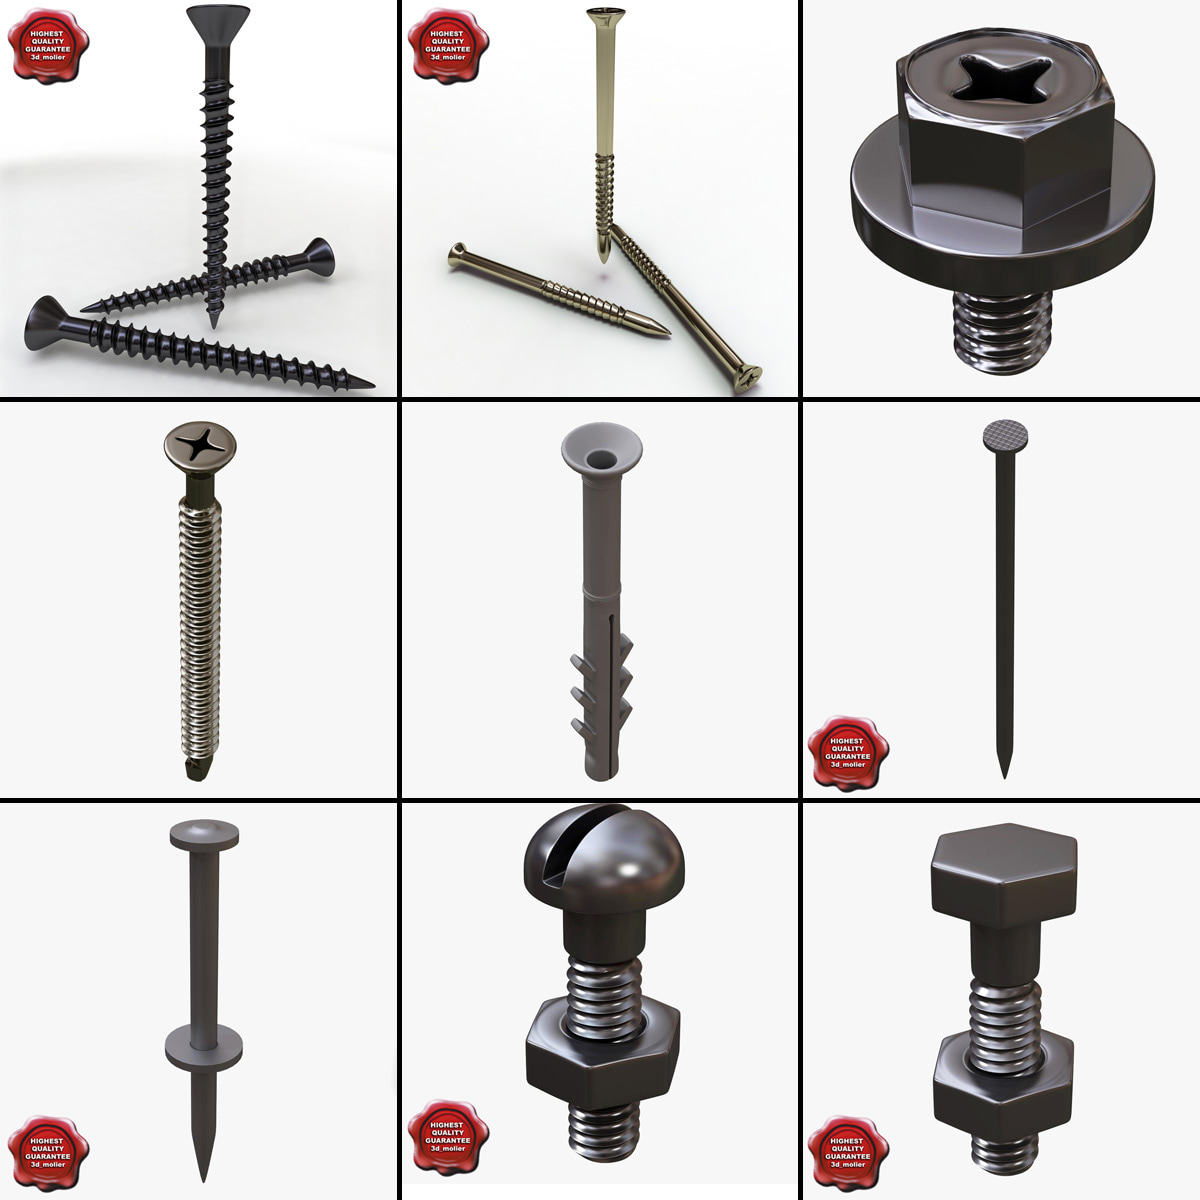 Bolts_and_Screws_Collection_00.jpg